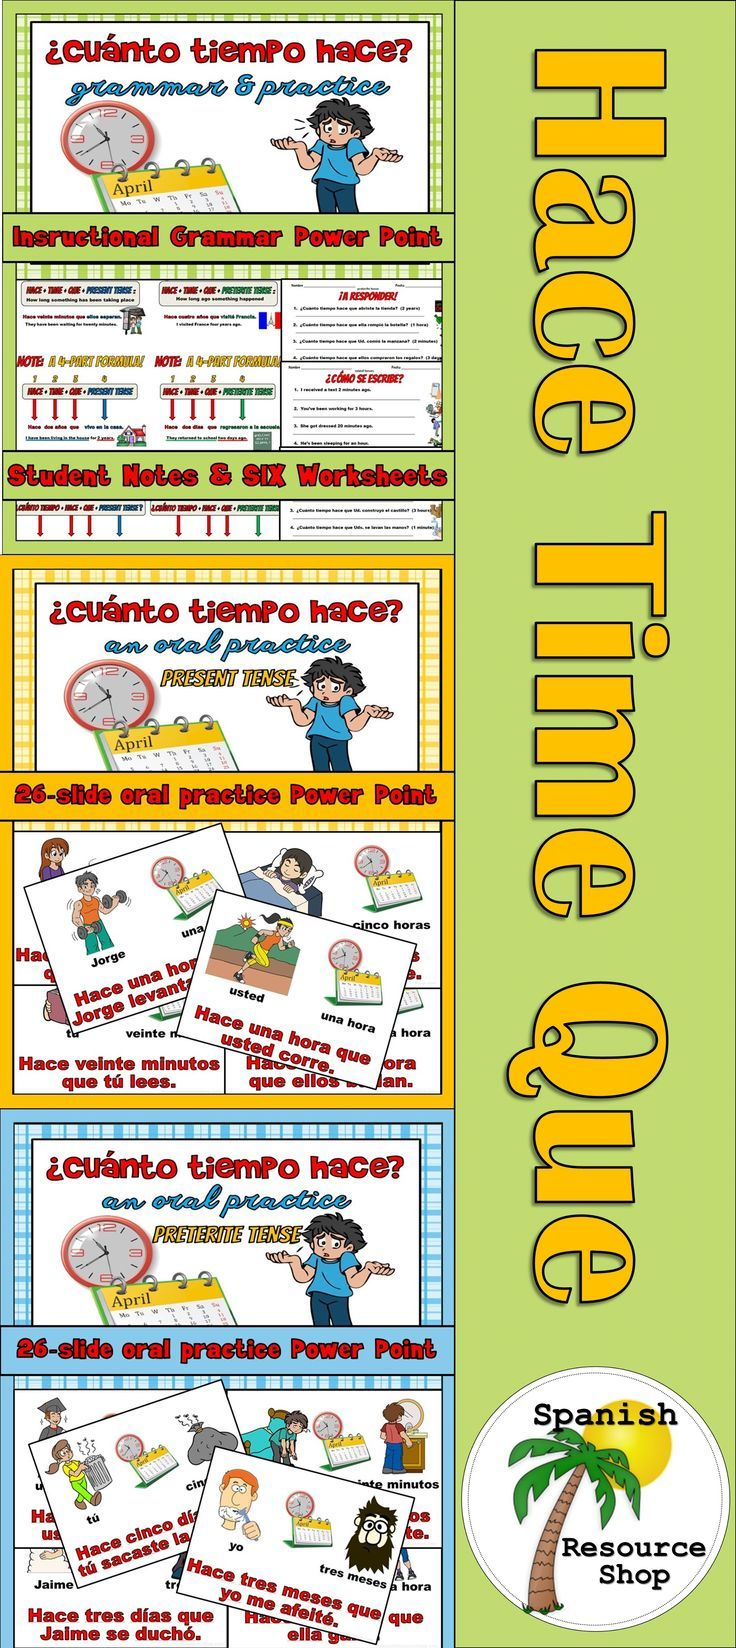 Workbooks spanish present tense practice worksheets : Hace Time Que VALUE PACK | Spanish, Spanish lessons and Spanish ...